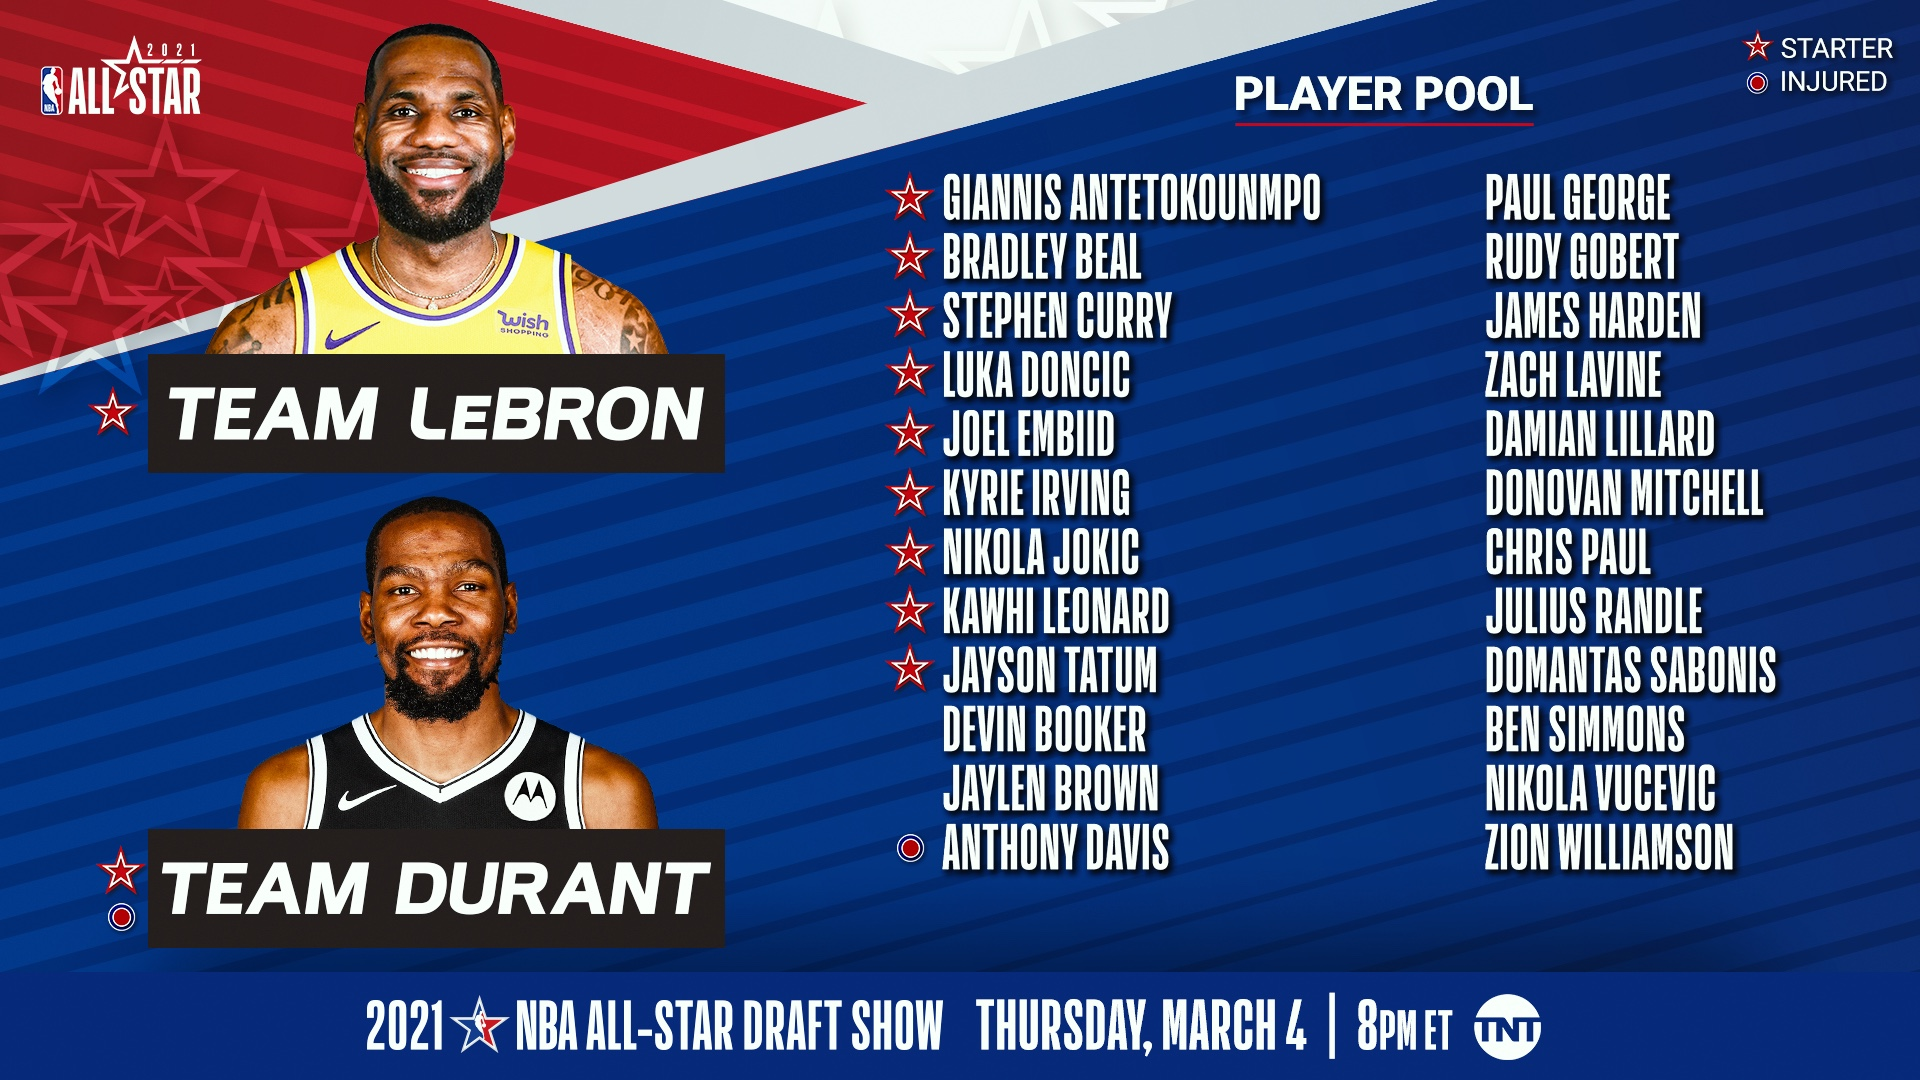 Team LeBron vs. Team Durant: What to know for tonight's NBA All-Star Draft